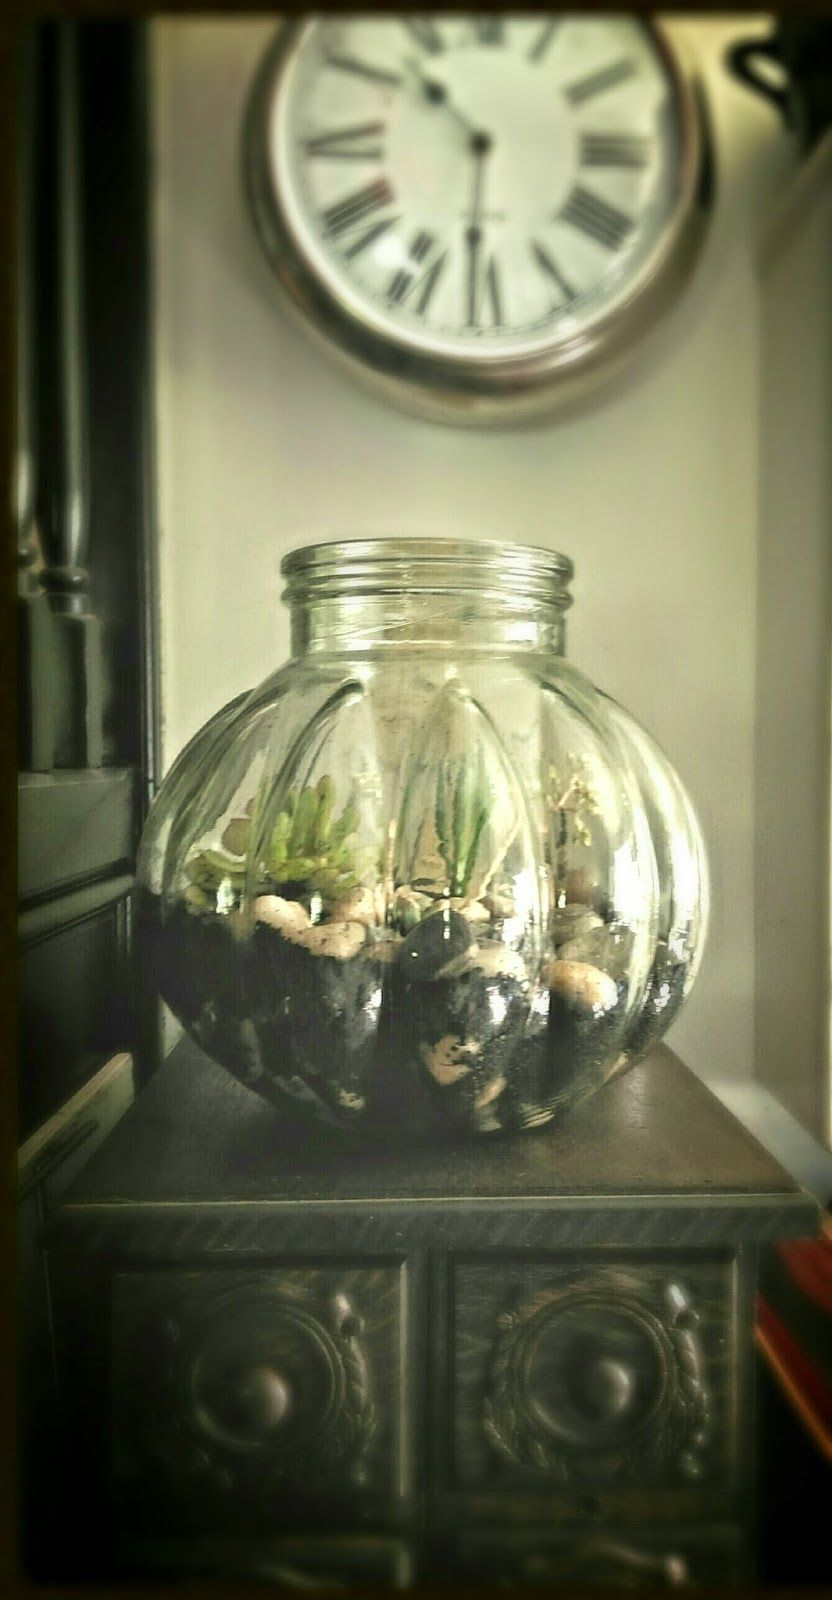 my first terrarium attempt http://theforestflaw.blogspot.com.au/